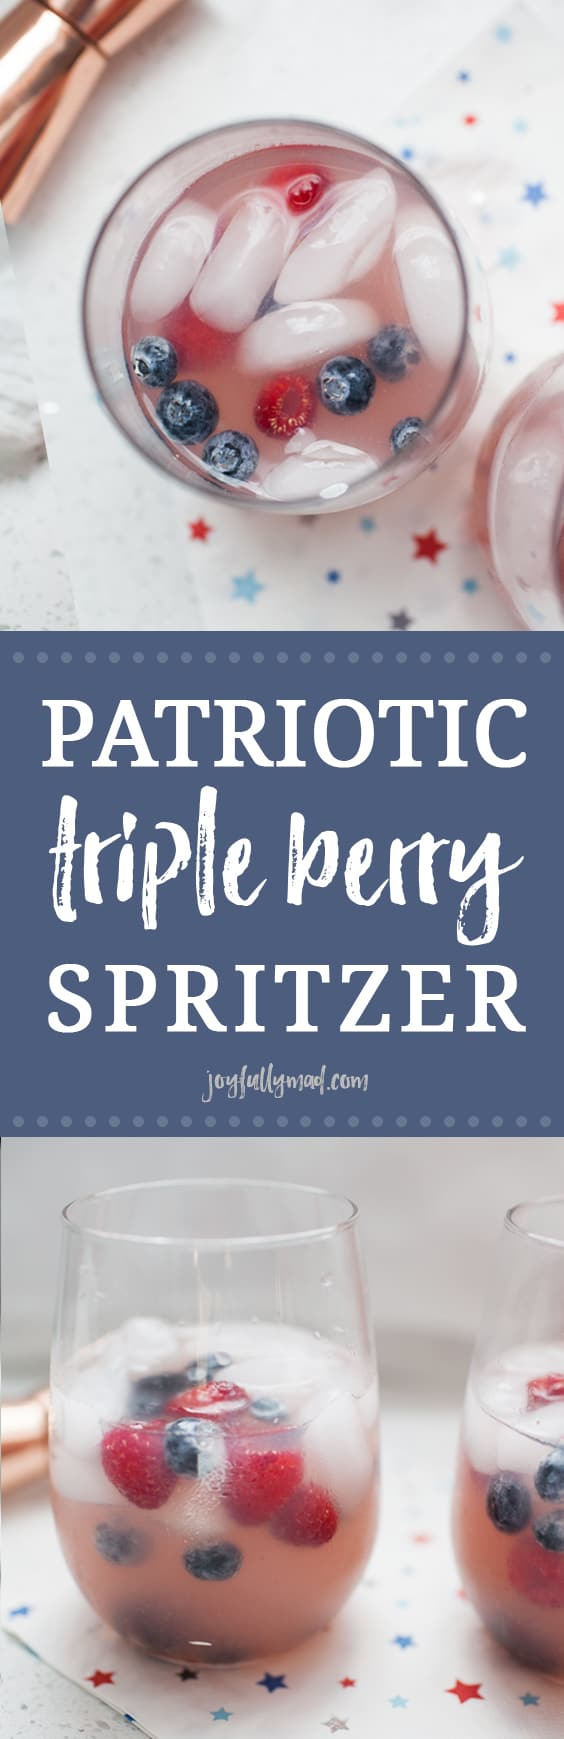 Celebrate summer and July 4th with this beautiful patriotic triple berry spritzer. Made with a triple berry simple syrup, tequila and lemon lime soda it's the perfect way to enjoy the summertime! 4th of july cocktail | patriotic cocktail | berry cocktail | triple berry spritzer | patriotic drink | berry drink | summer cocktail | tequila cocktail